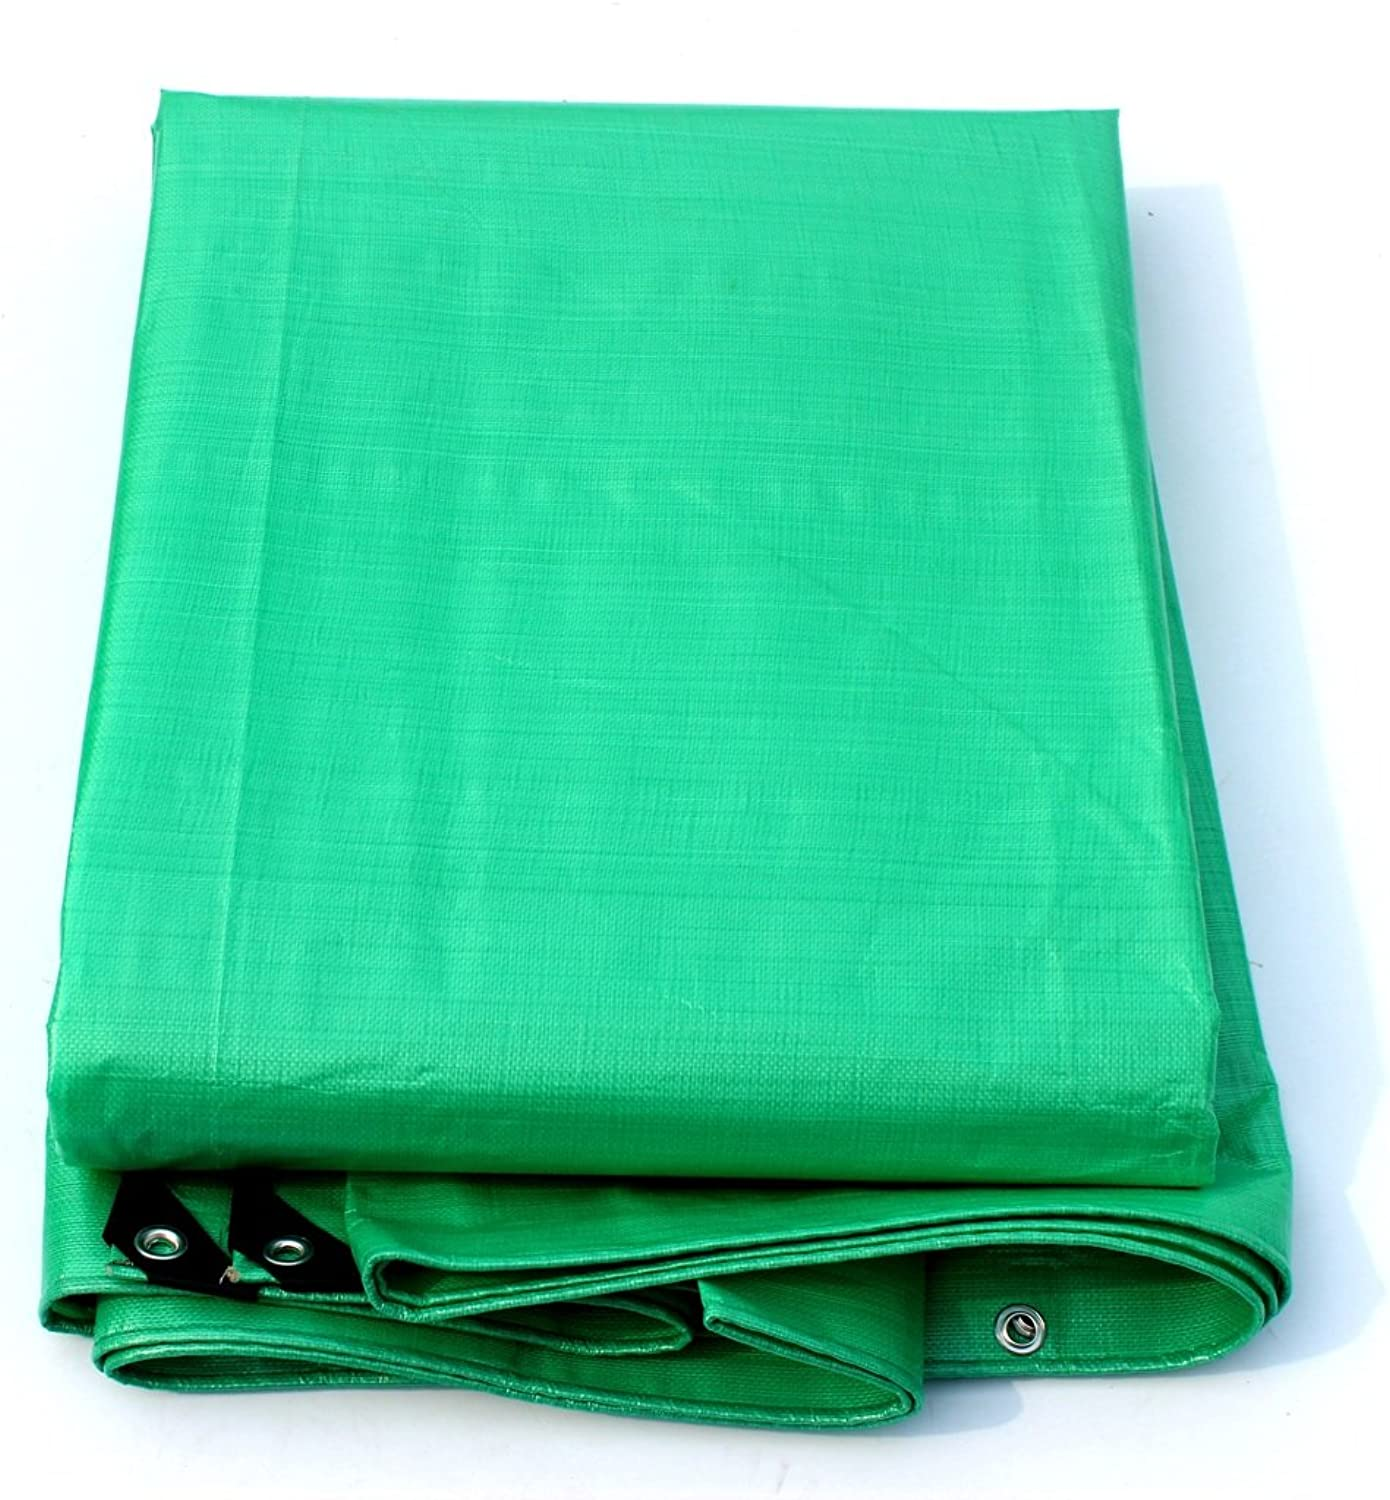 NYDZDM Polyethylene Thickening Tarpaulin Waterproof Sun Predection Outdoor Gardening Car Cover Cloth Green (Size   4m x 3m)